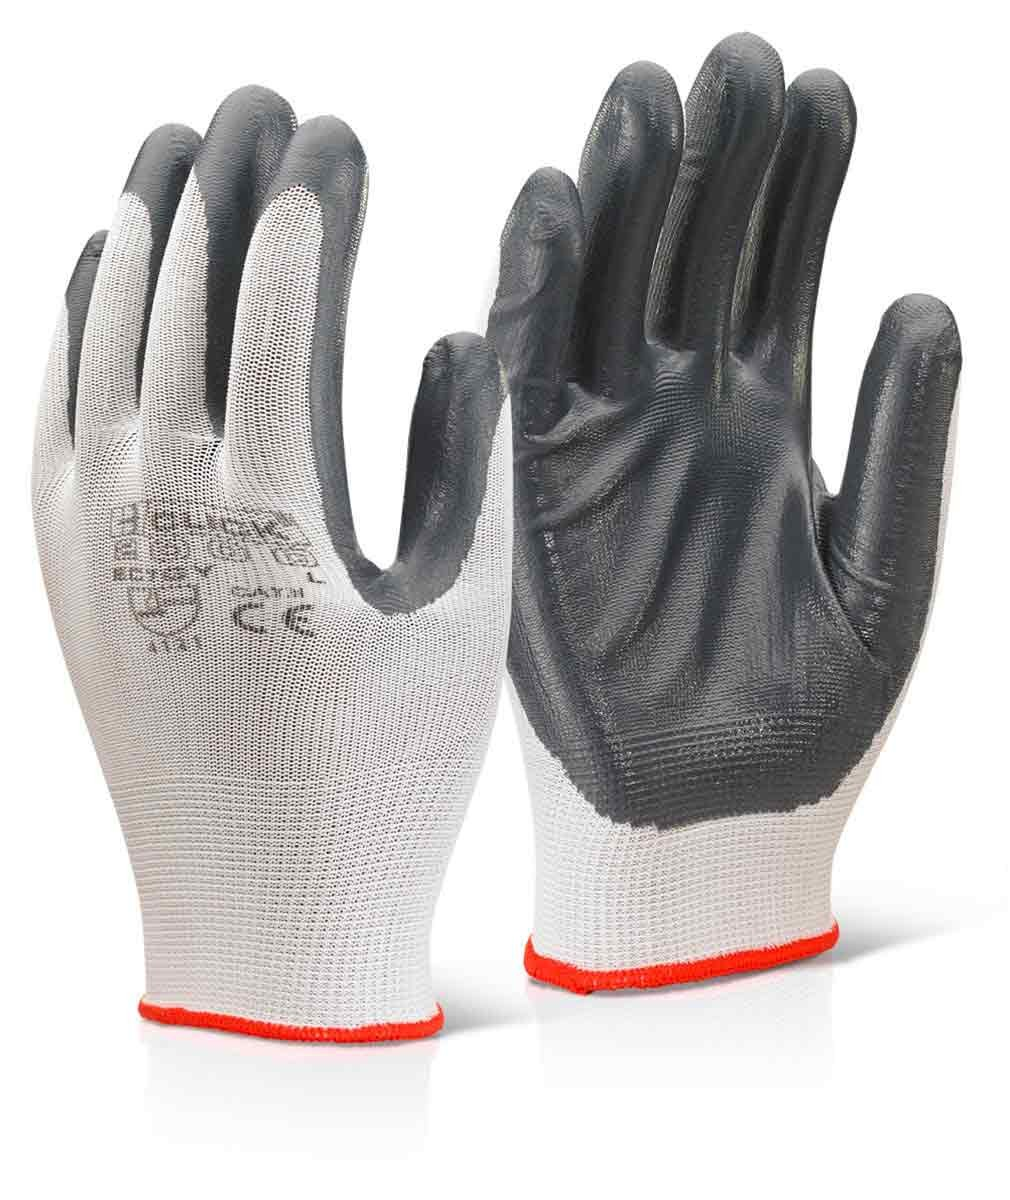 Leather work gloves screwfix - Click 2000 Ec7gy Nitrile Palm Coated Polyester Glove Grey